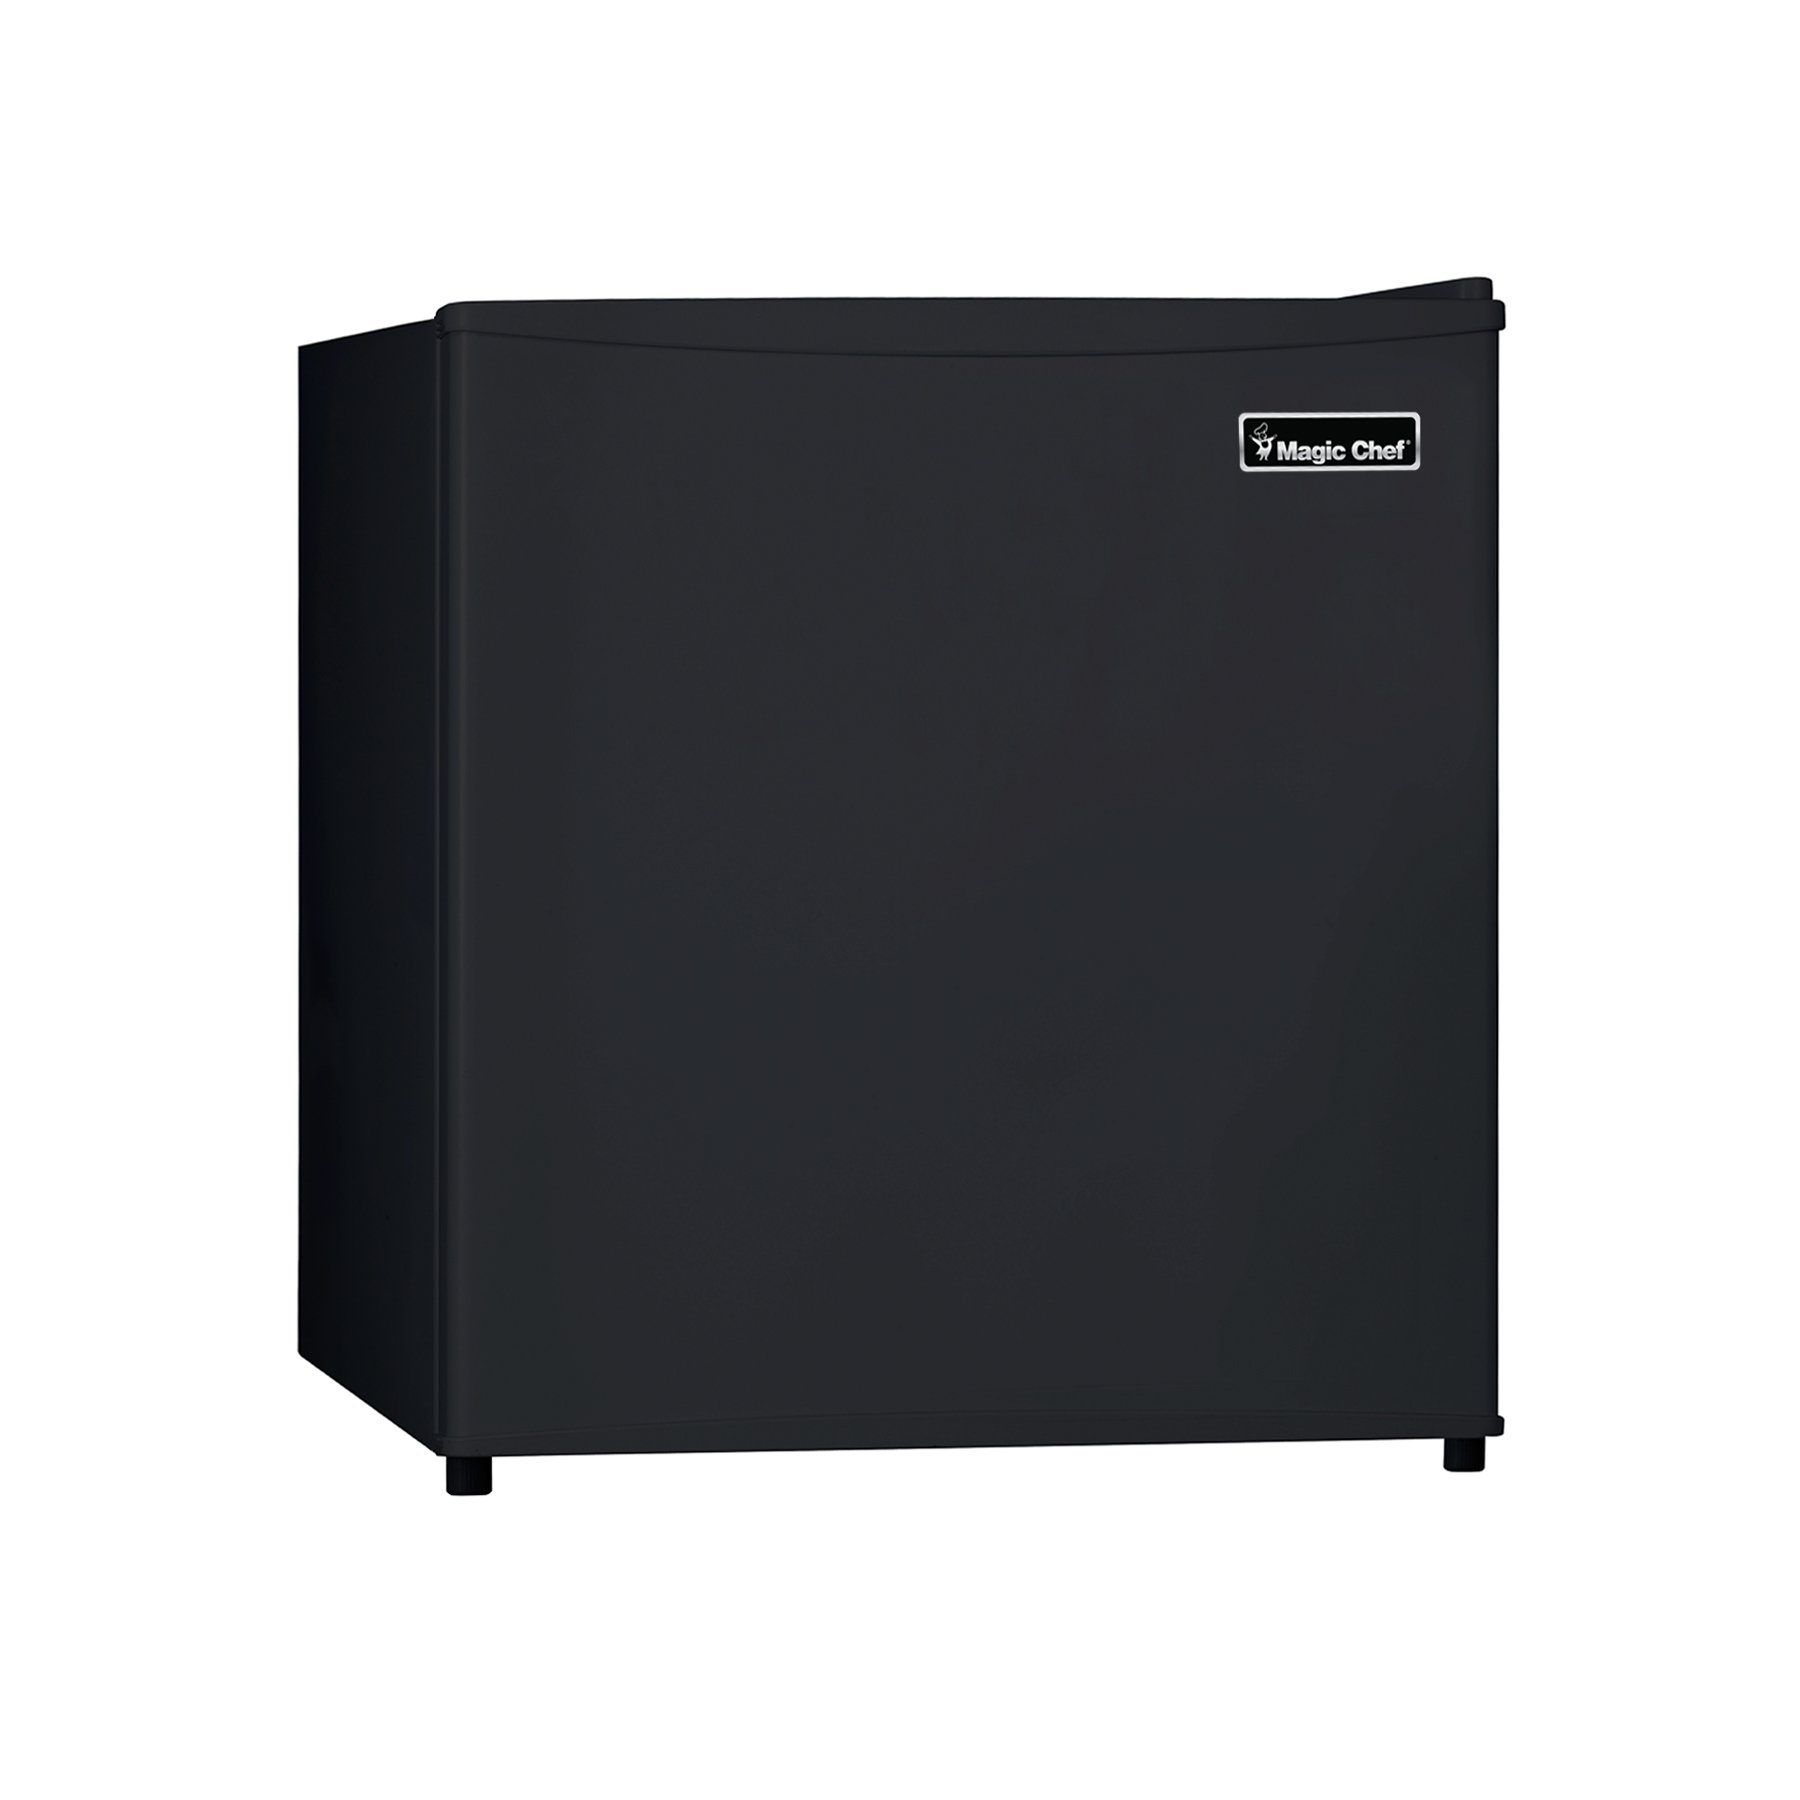 Magic Chef Mcbr160B2 Refrigerator 1.6 Cu.Ft. Black 1.6 Cu.Ft. 4